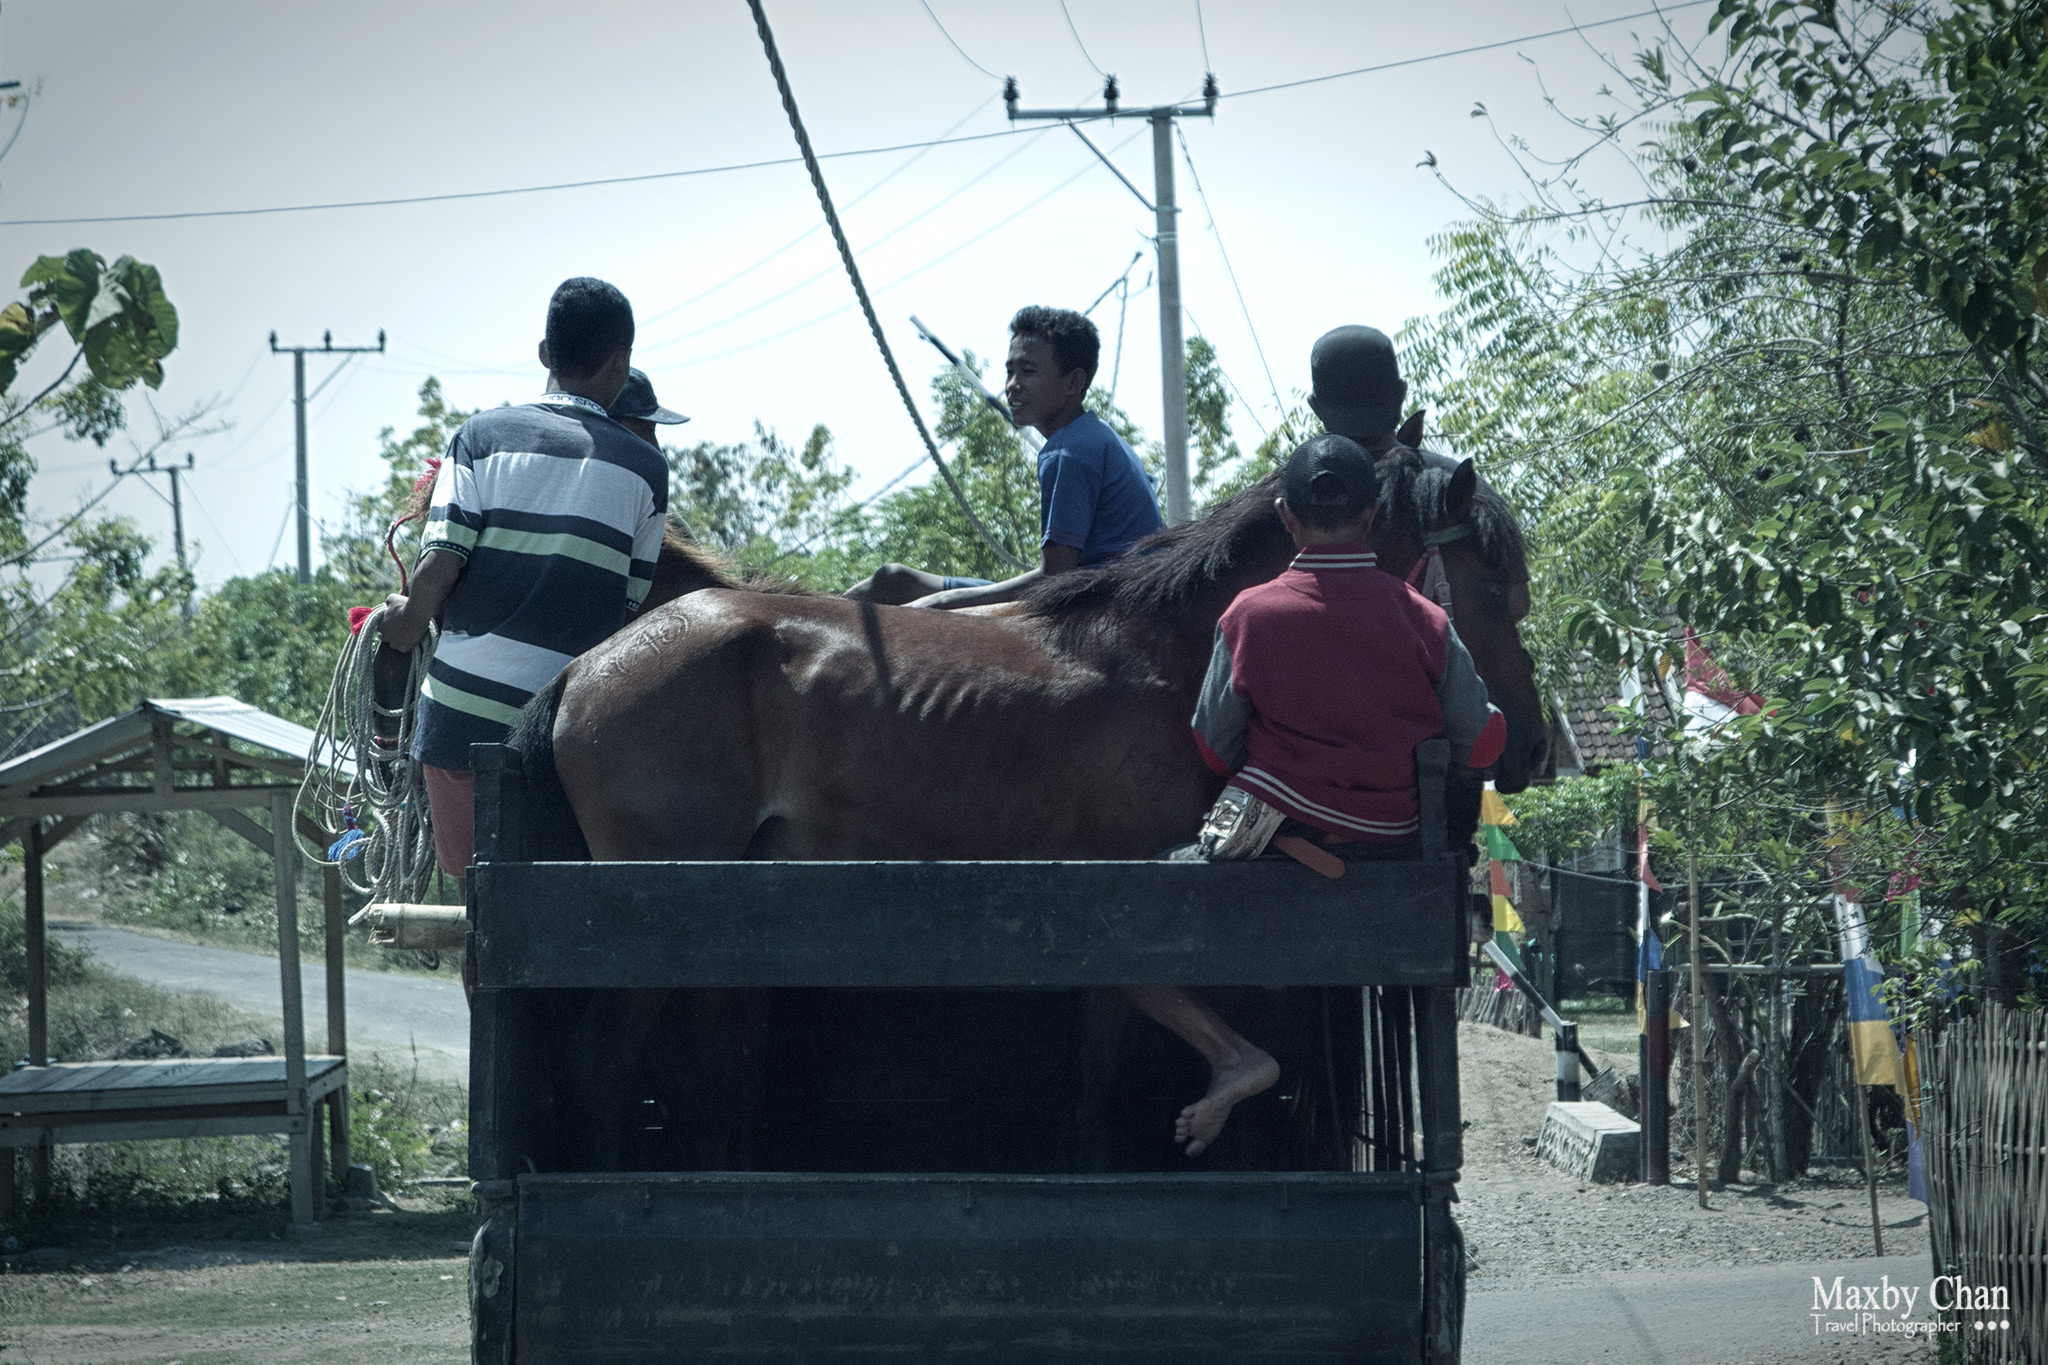 The horses were transported to the race course or the practice session.